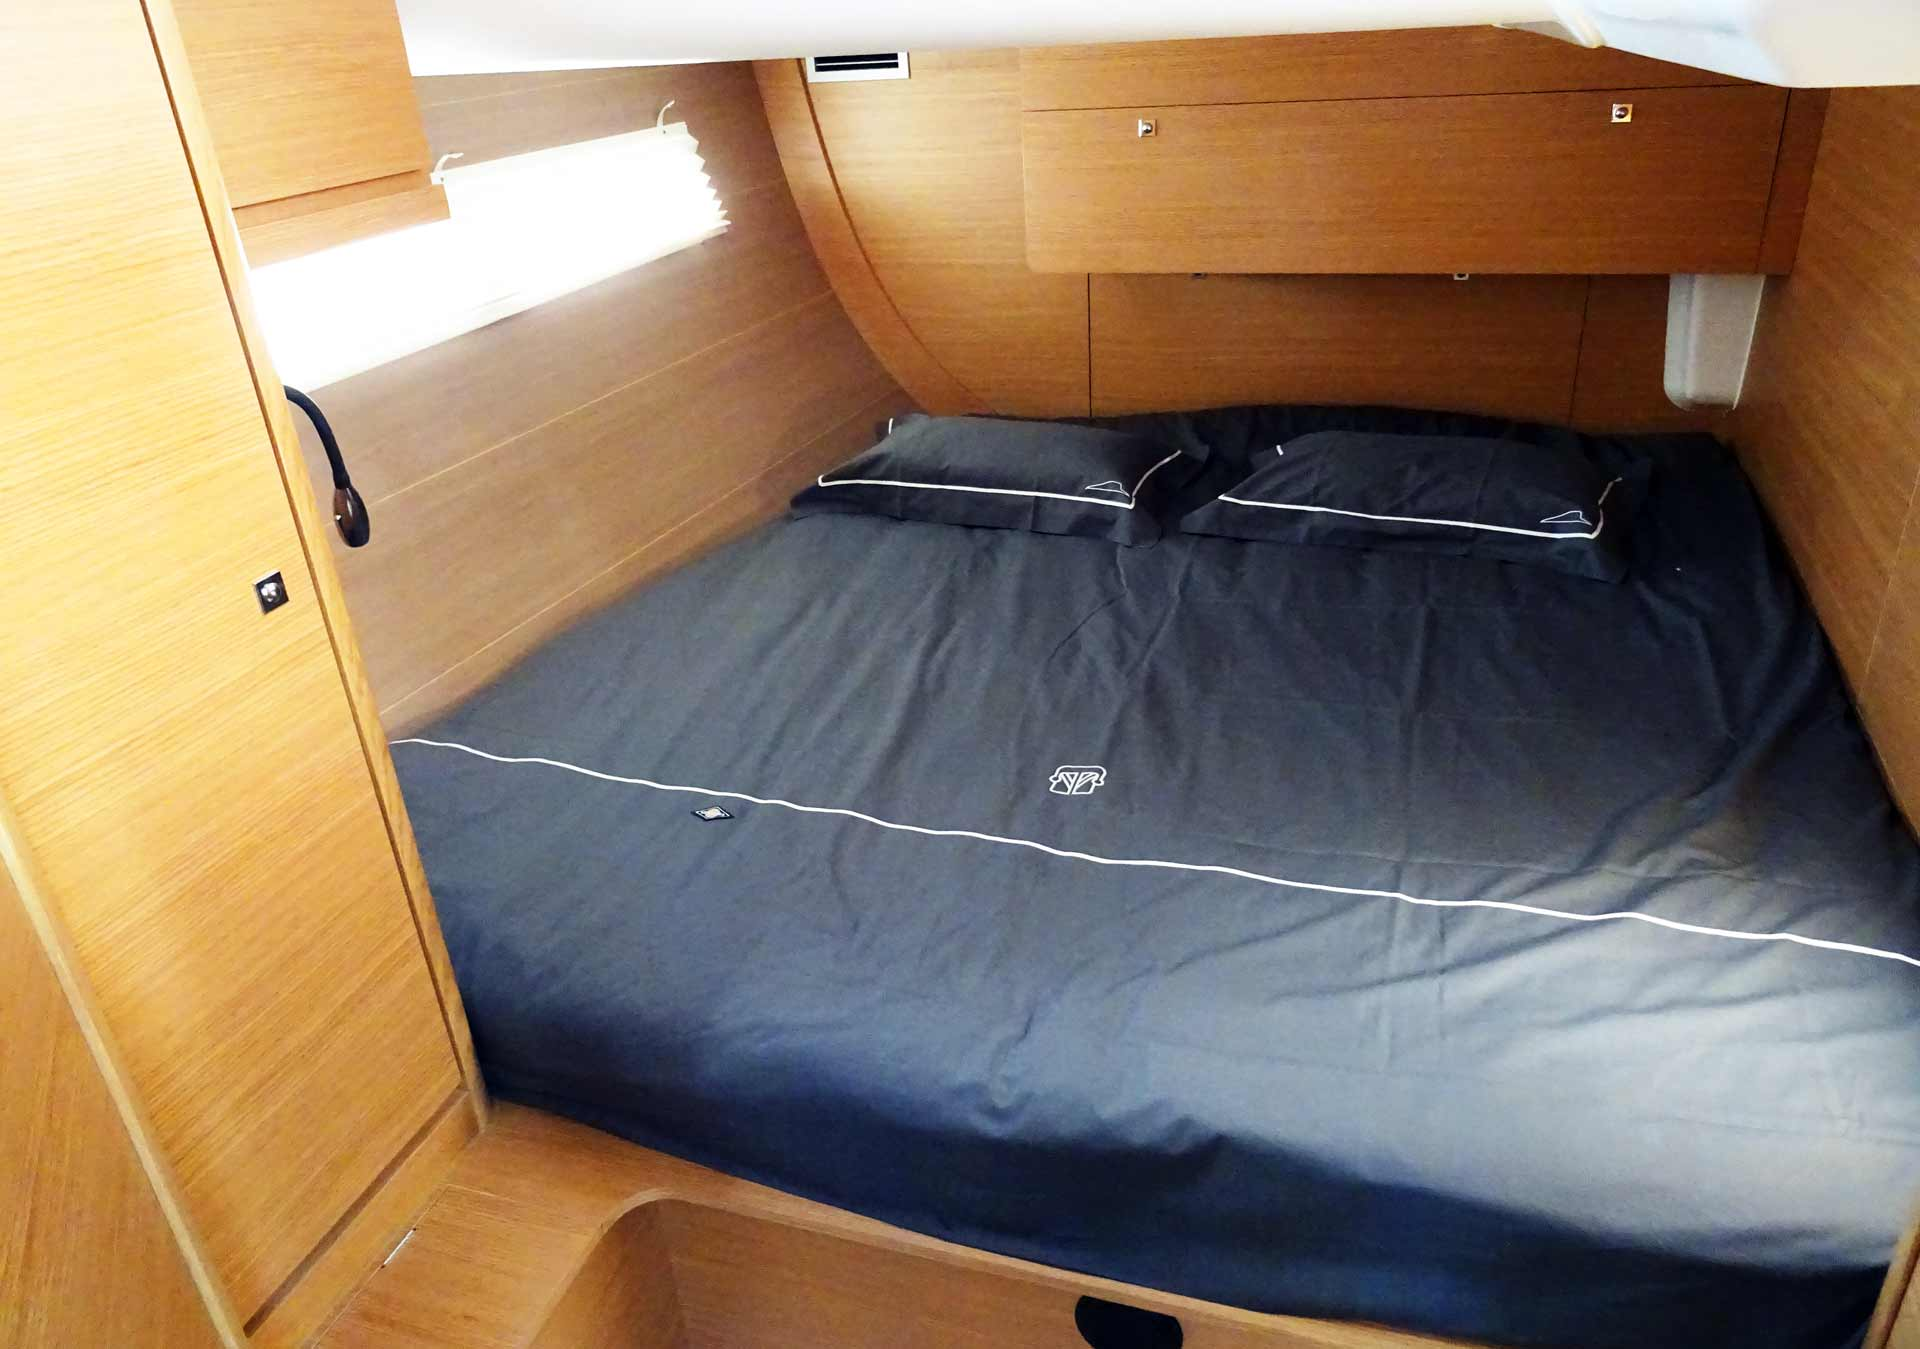 I never saw more headroom for an aft cabin than in this yacht.